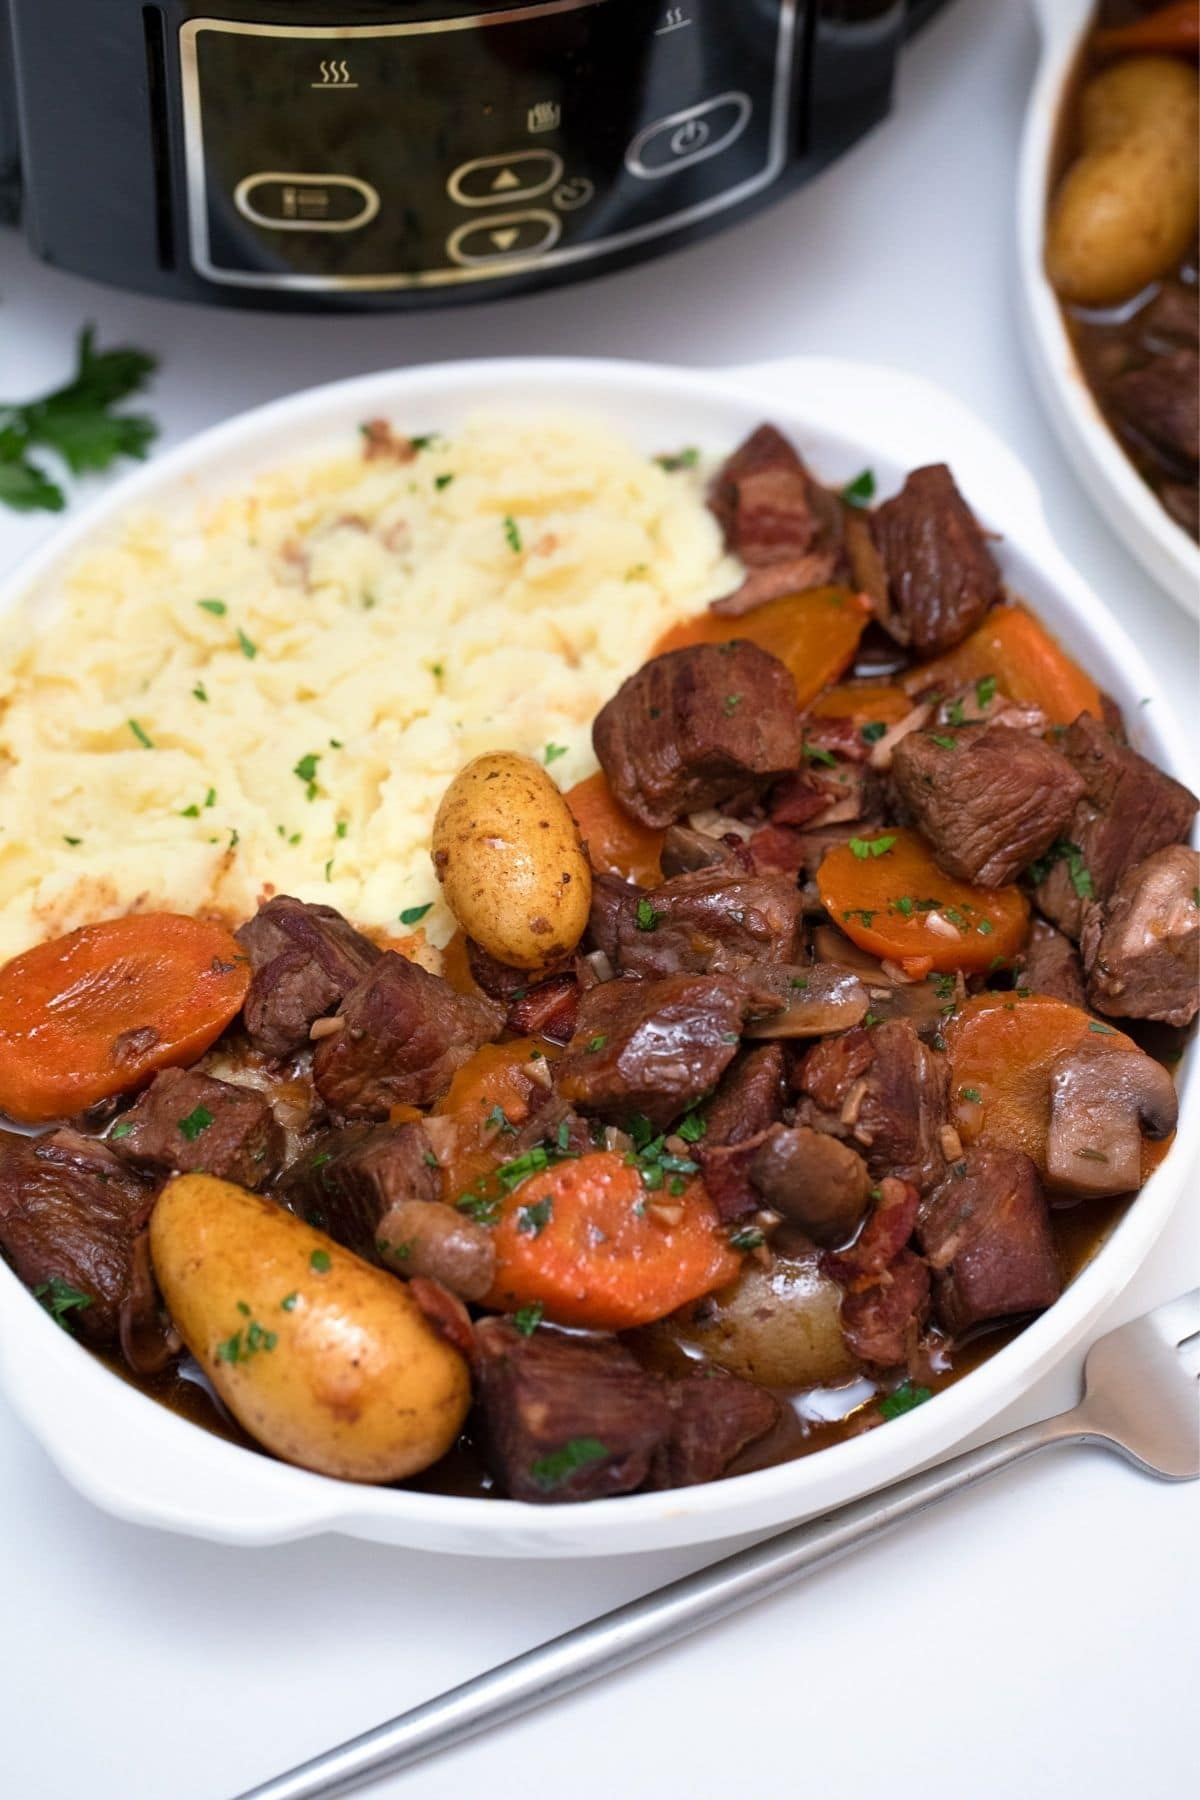 Round white bowl of beef bourguignon and potatoes on white table